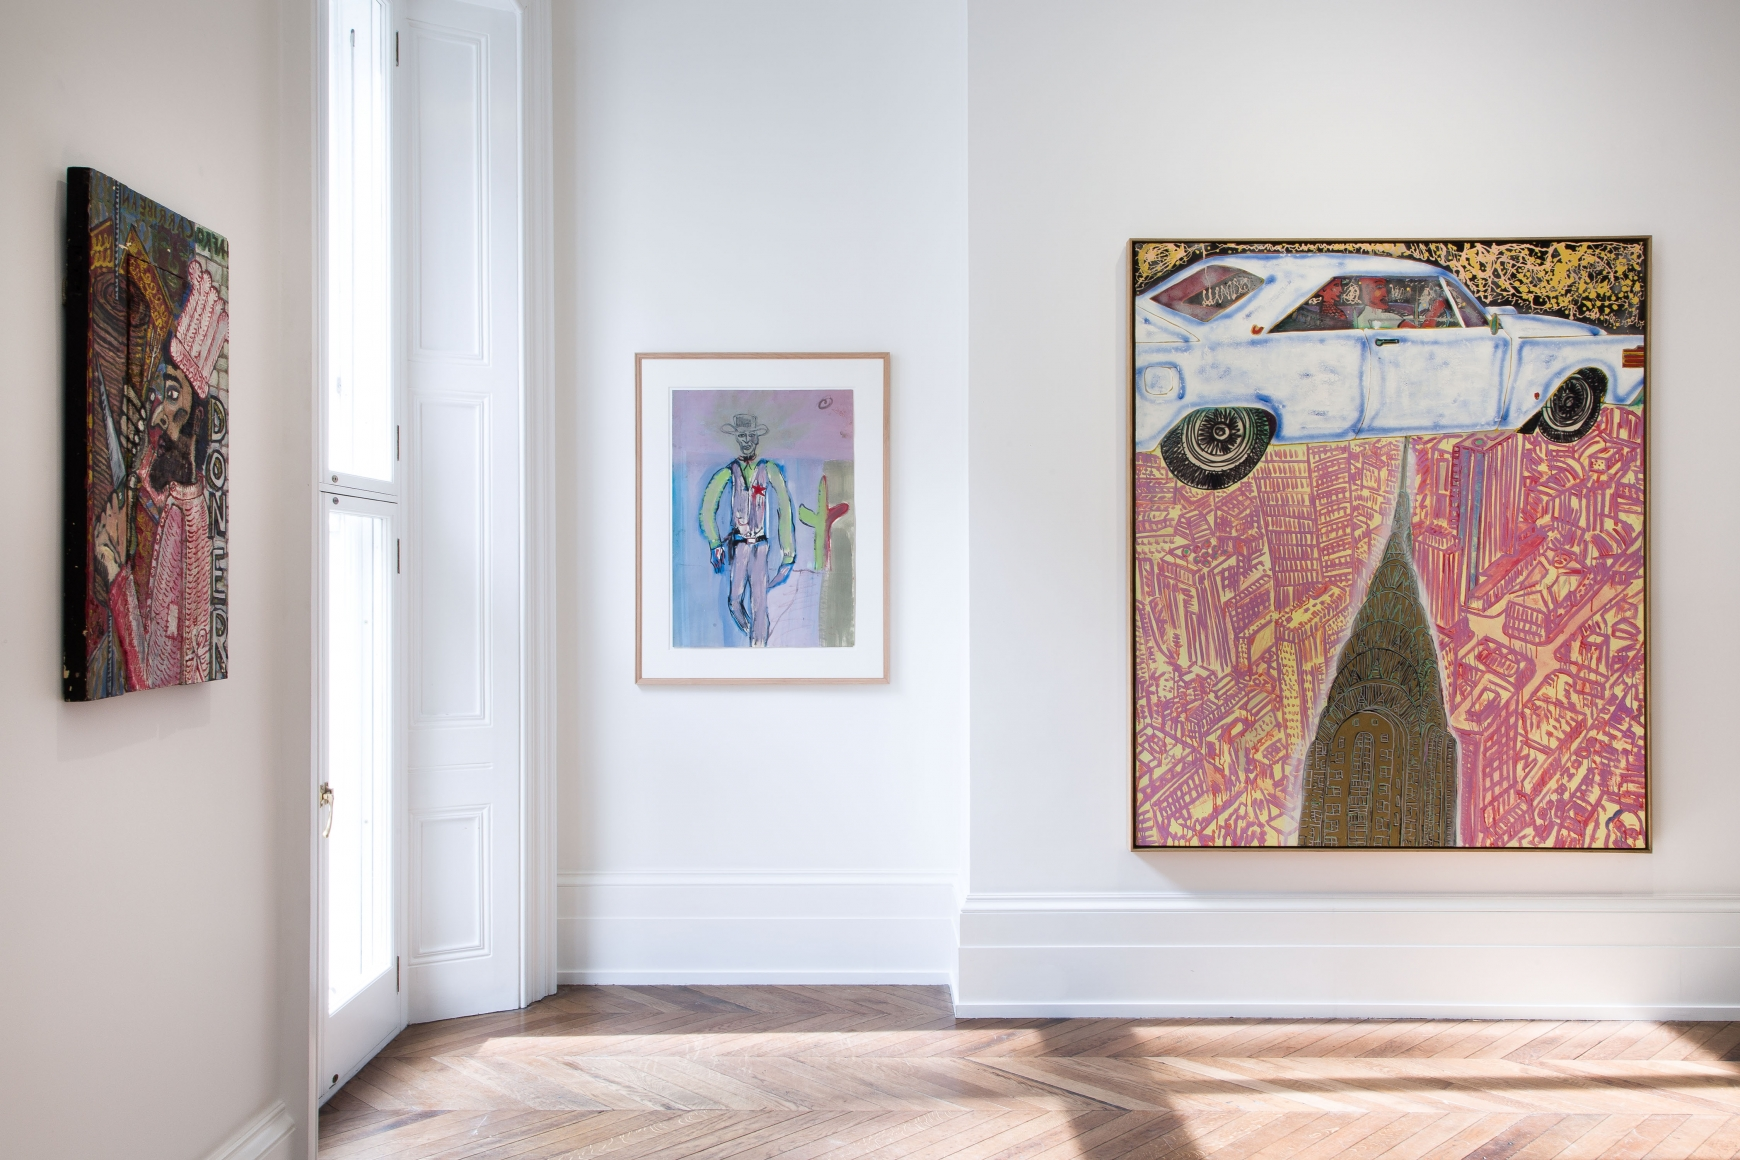 Peter Doig, Early Works, London, 2014, Installation Image 1